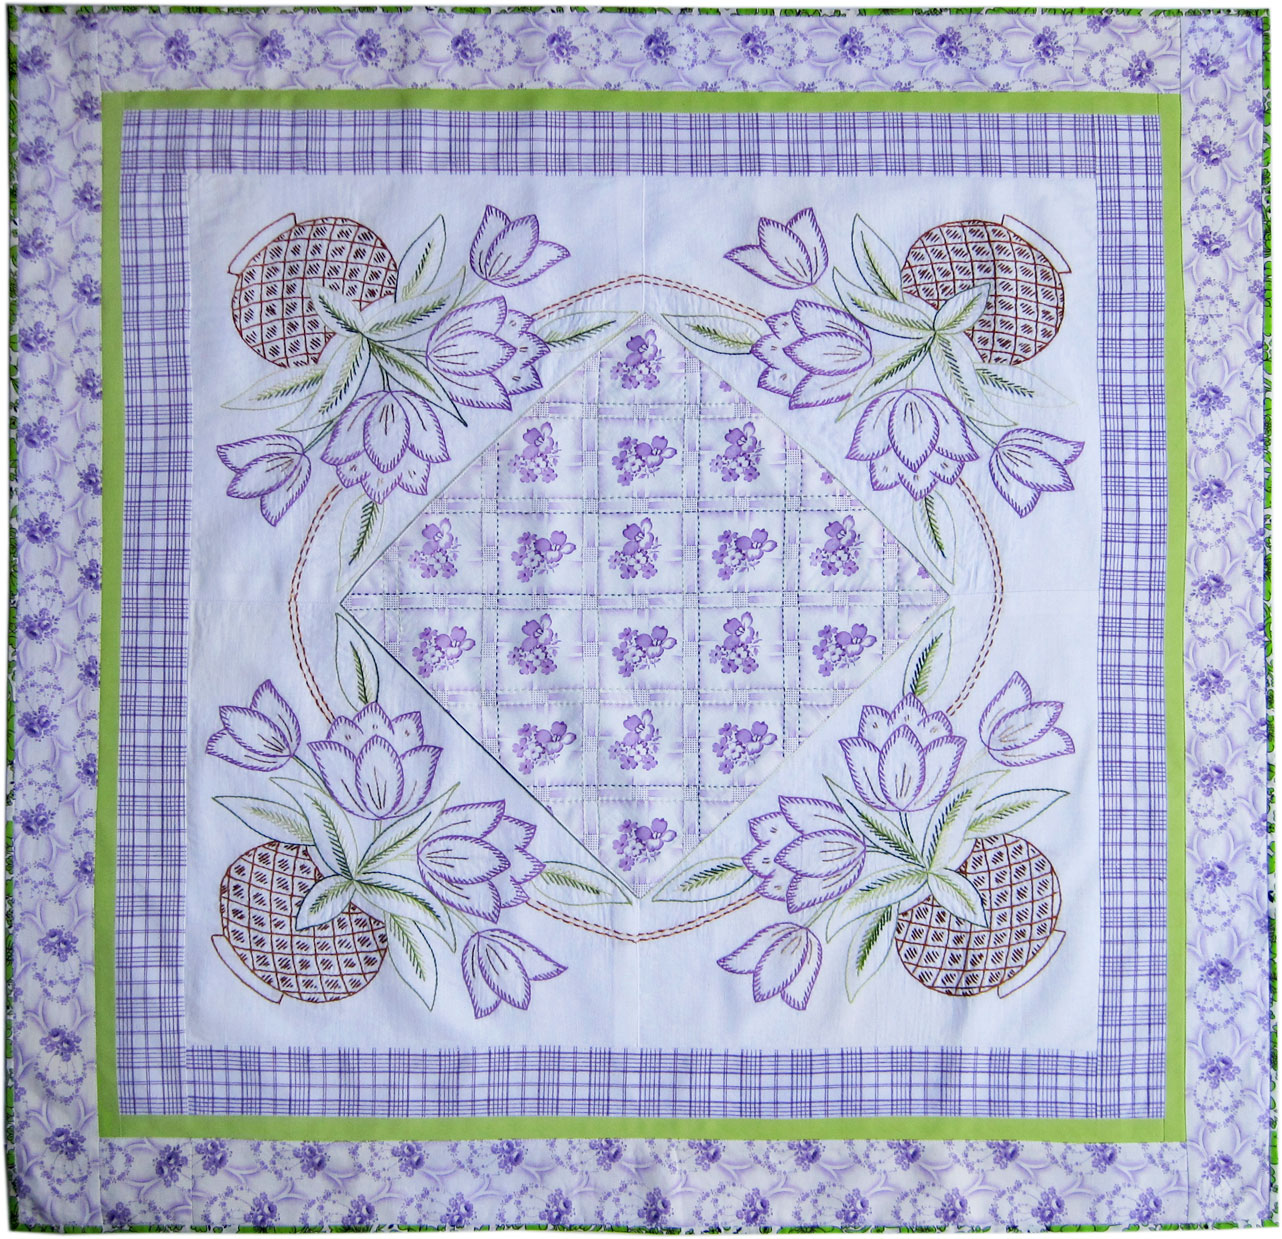 Vintage embroidered tulip tablecloth remade q is for quilter